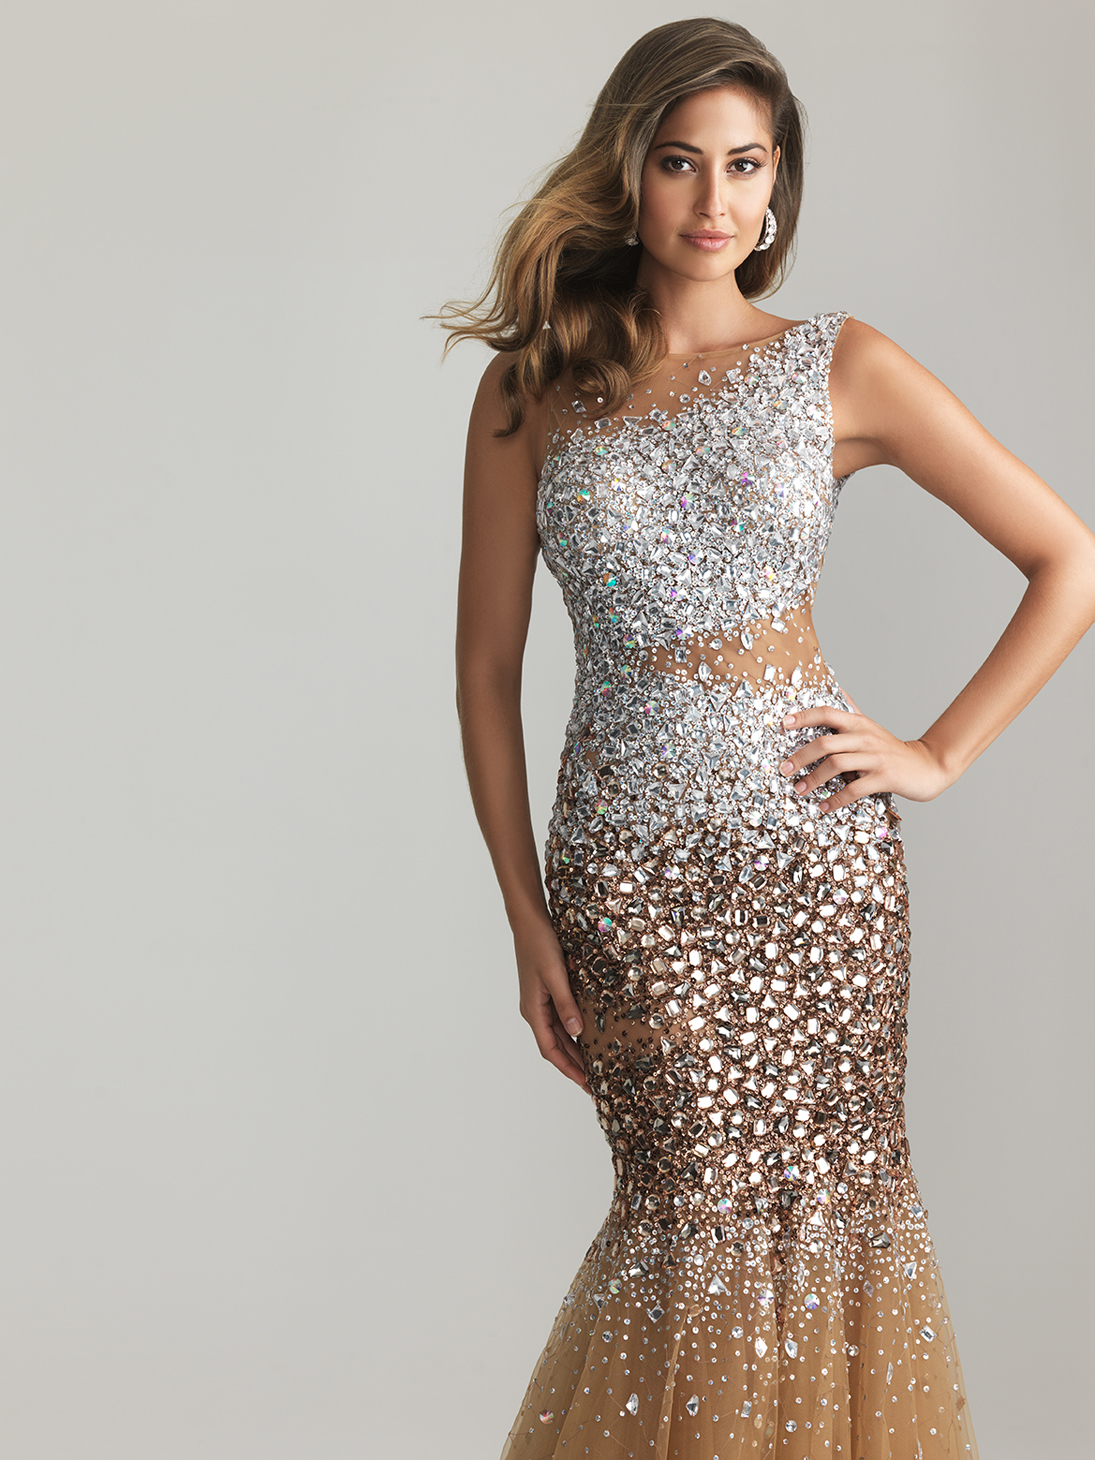 Nude Sheer Sequin & Tulle Low Back Mermaid Prom Gown - Unique Vintage - Prom dresses, retro dresses, retro swimsuits.